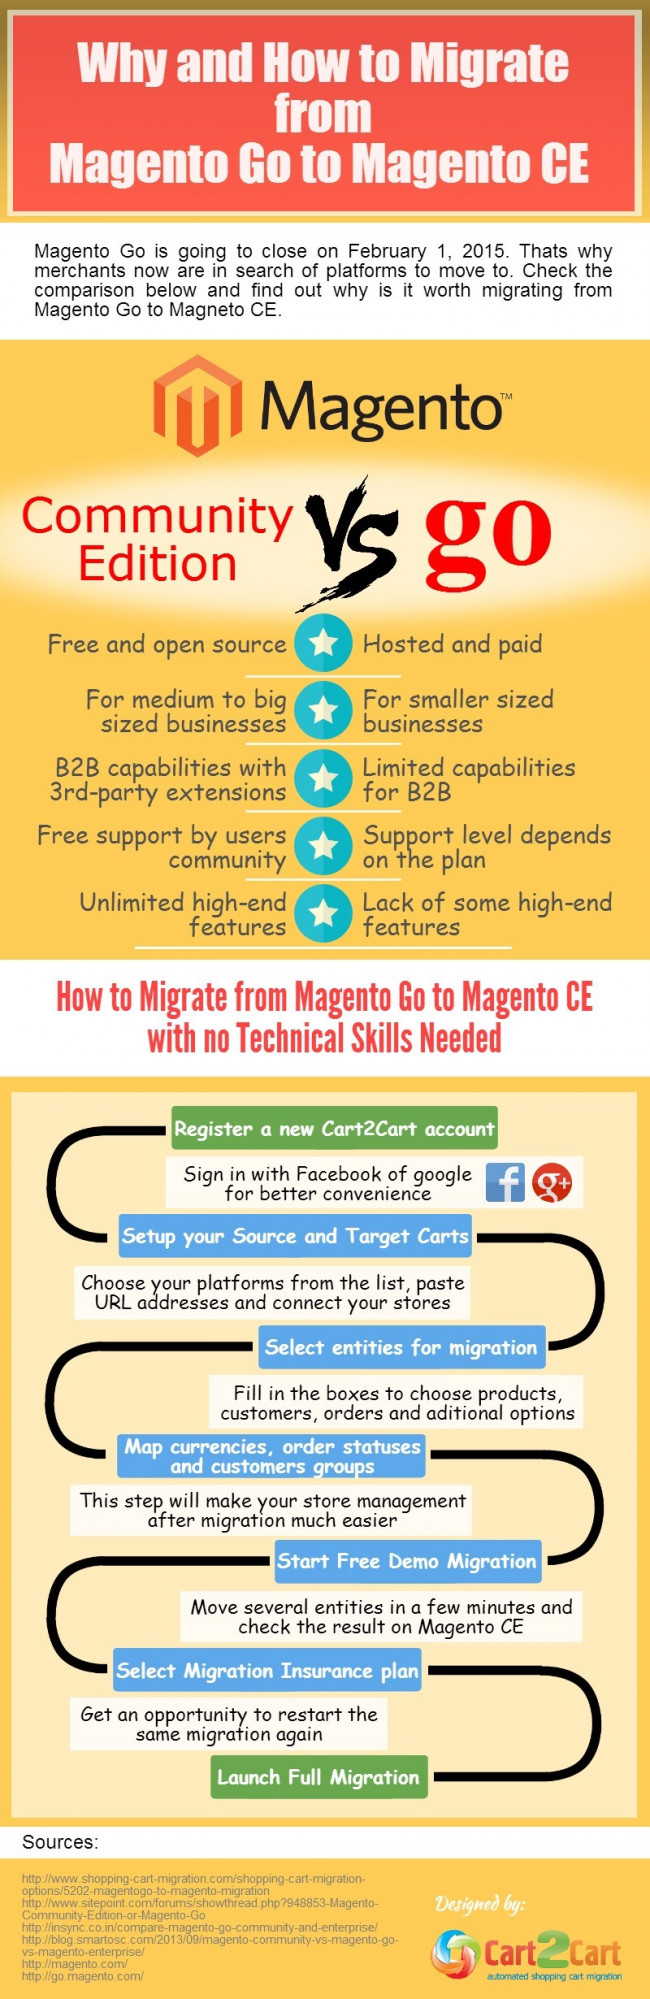 Why and How to Migrate from Magento Go to Magento CE